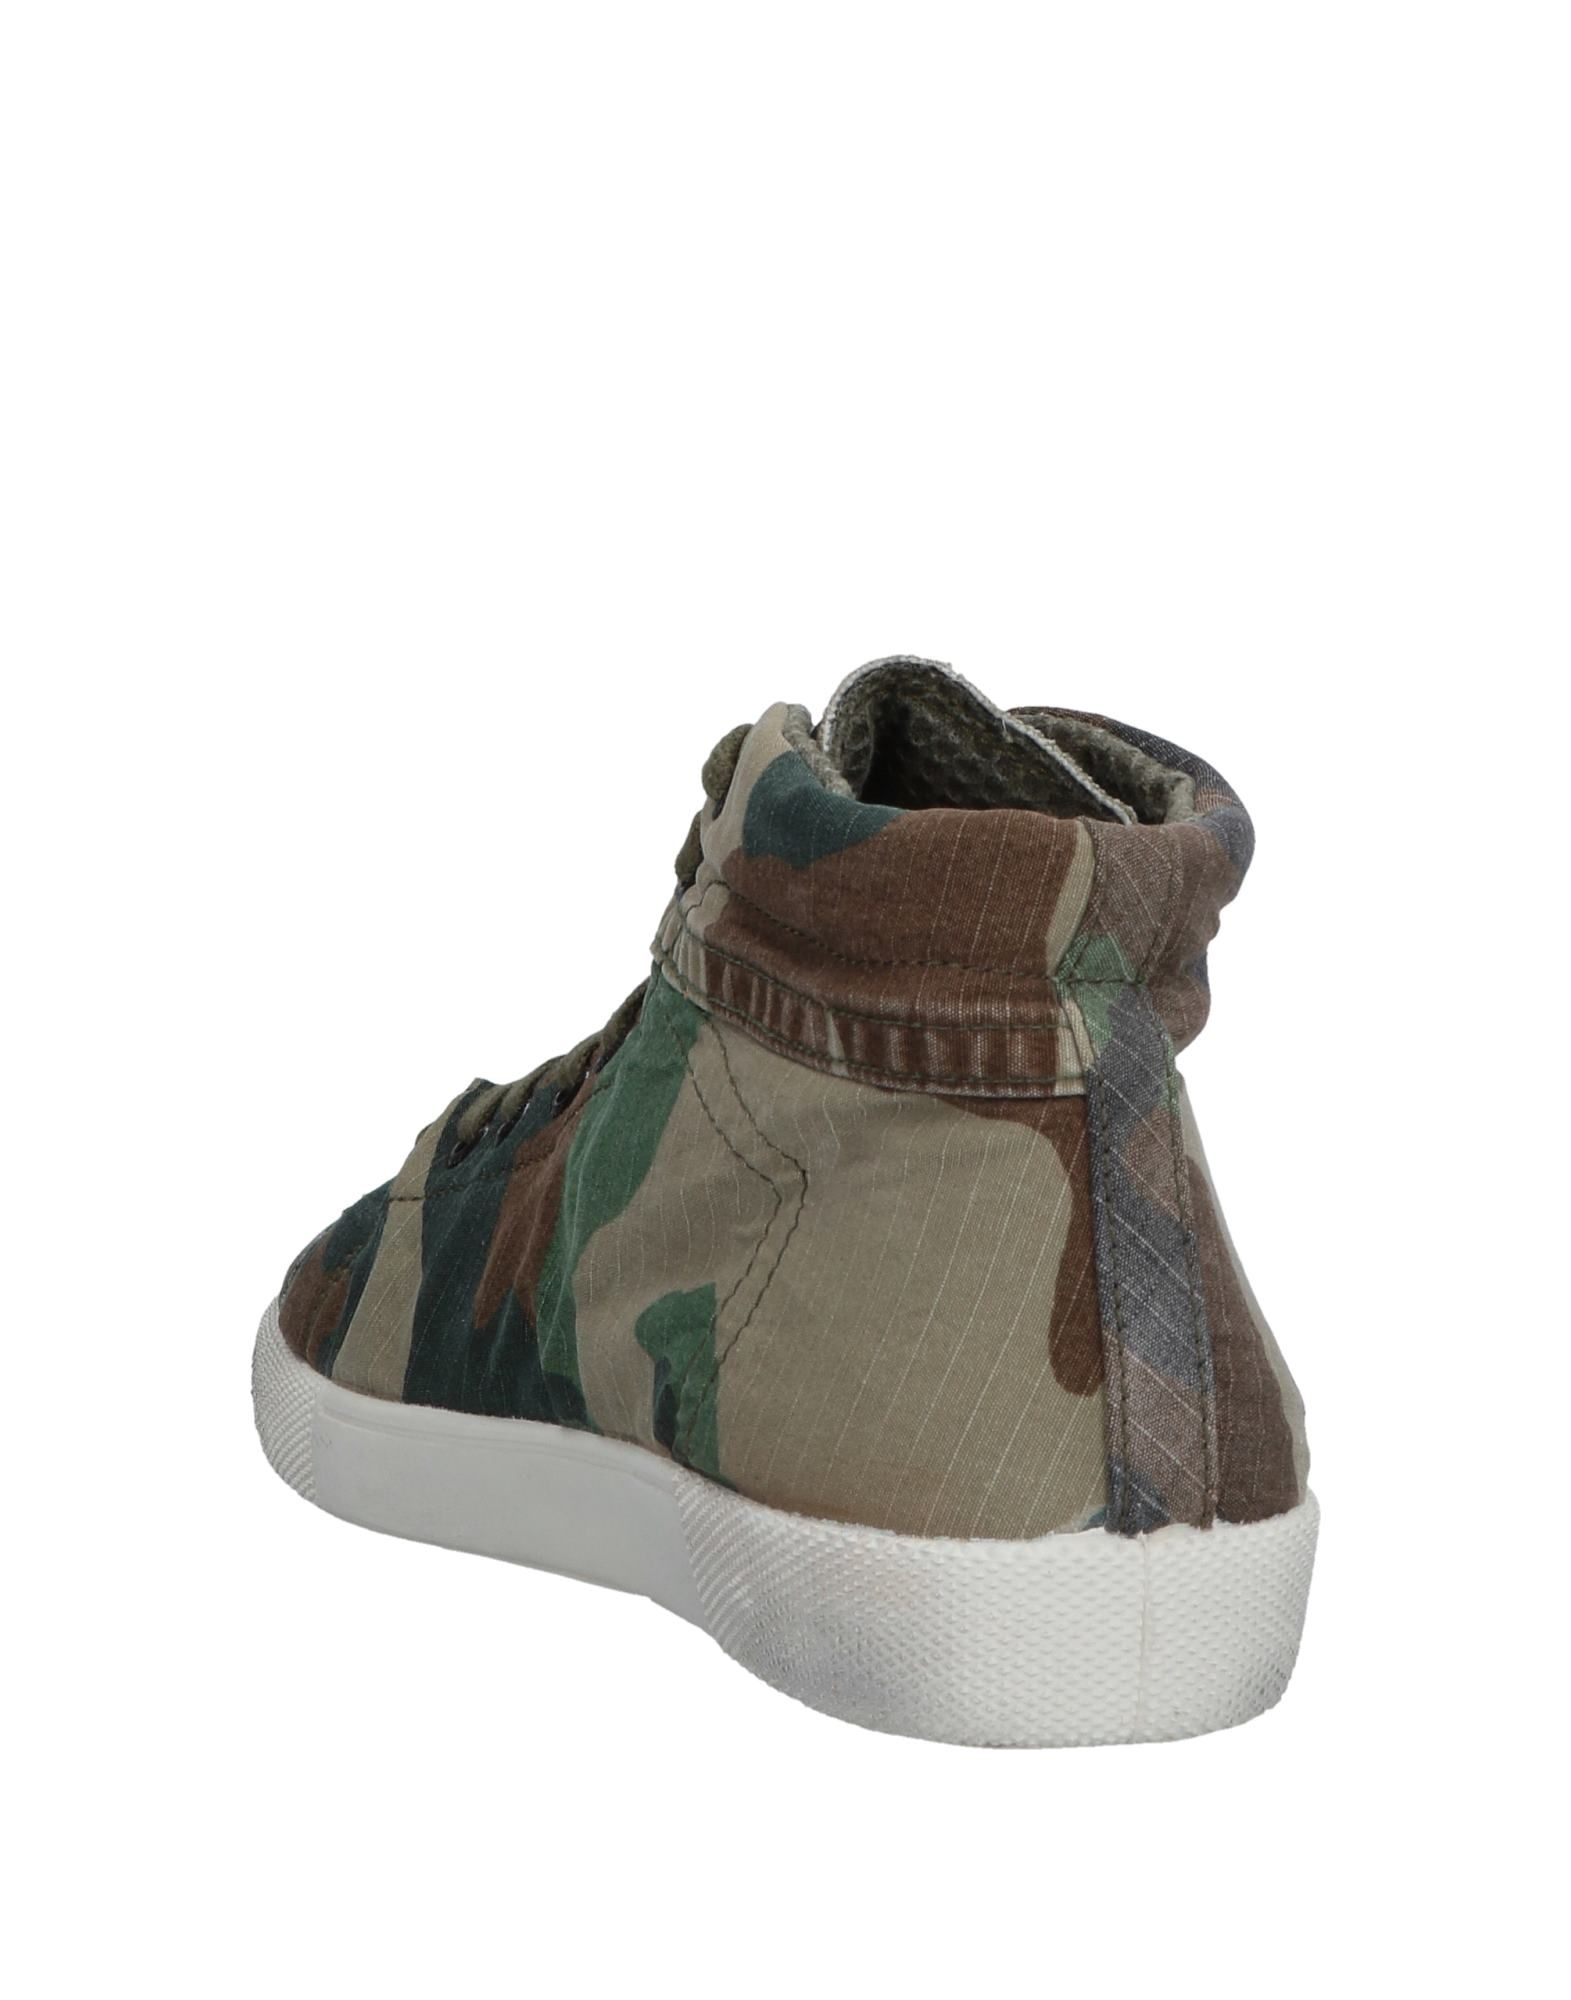 Springa Sneakers Sneakers Sneakers - Men Springa Sneakers online on  Canada - 11572700JB 5d709d